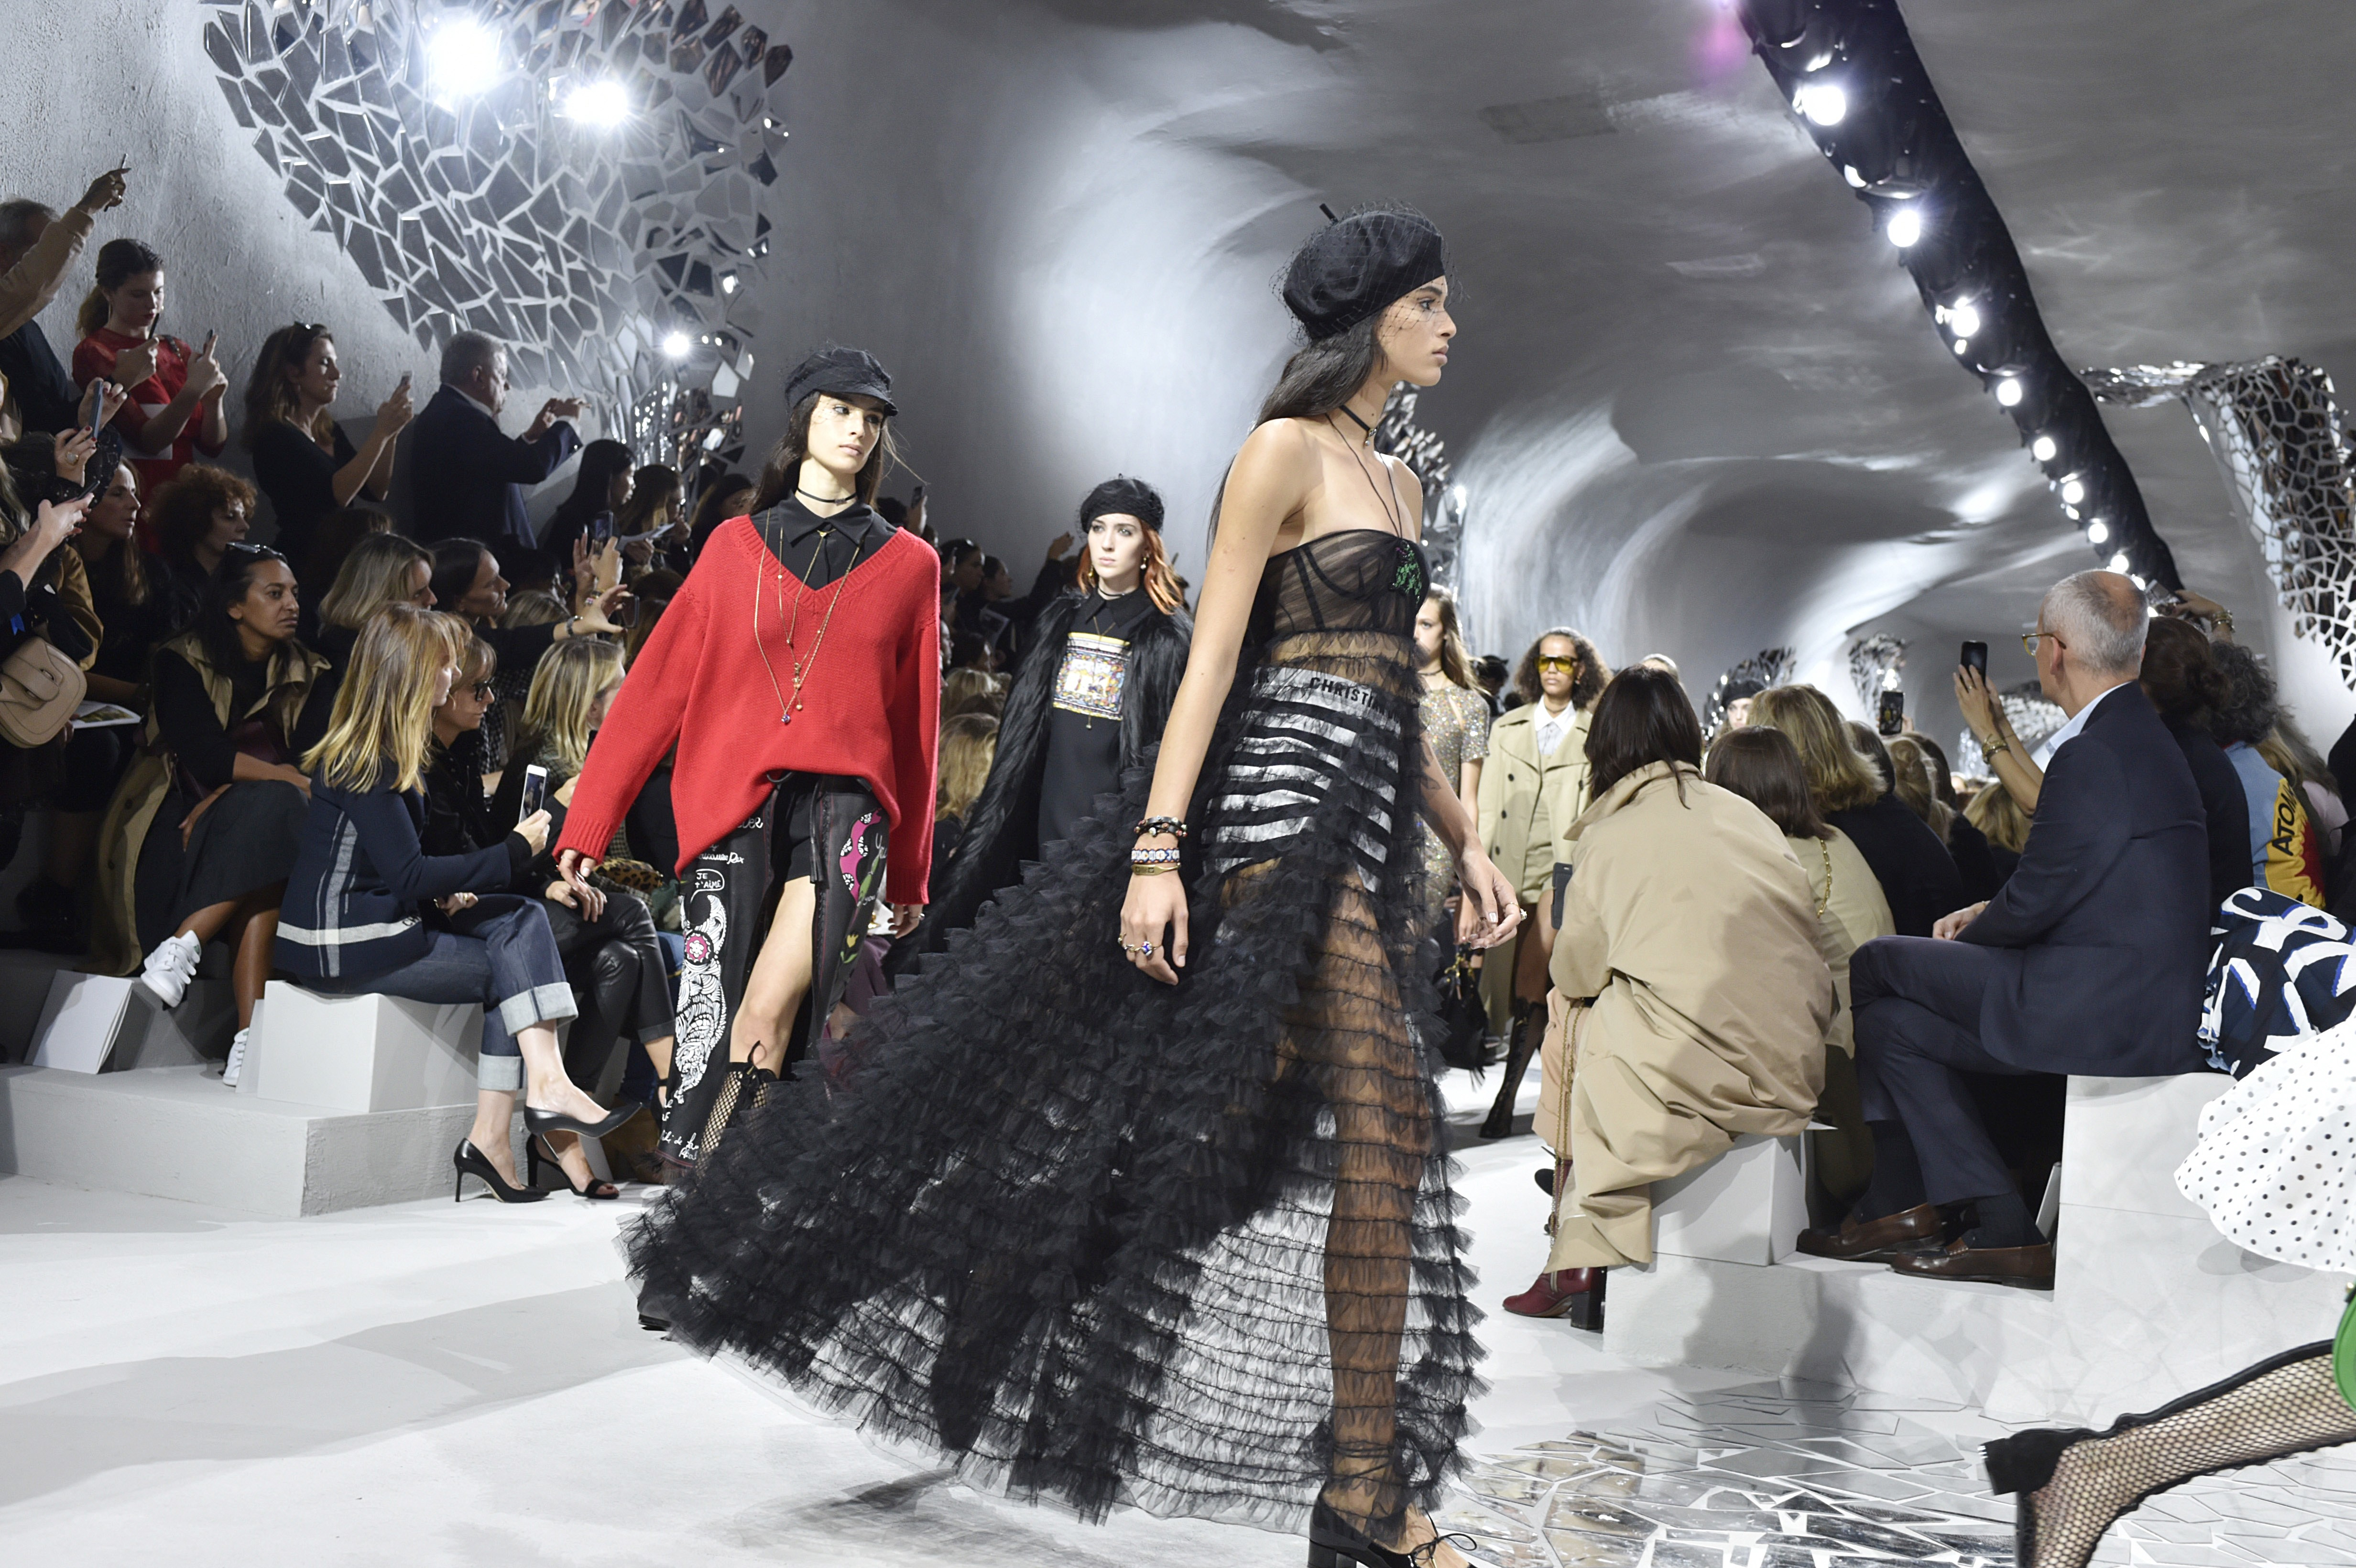 PARIS, FRANCE - SEPTEMBER 26: Models walk the runway at the Dior Spring Summer 2018 fashion show during Paris Fashion Week on September 26, 2017 in Paris, France. (Photo by Catwalking/Getty Images) (Foto: Getty Images)